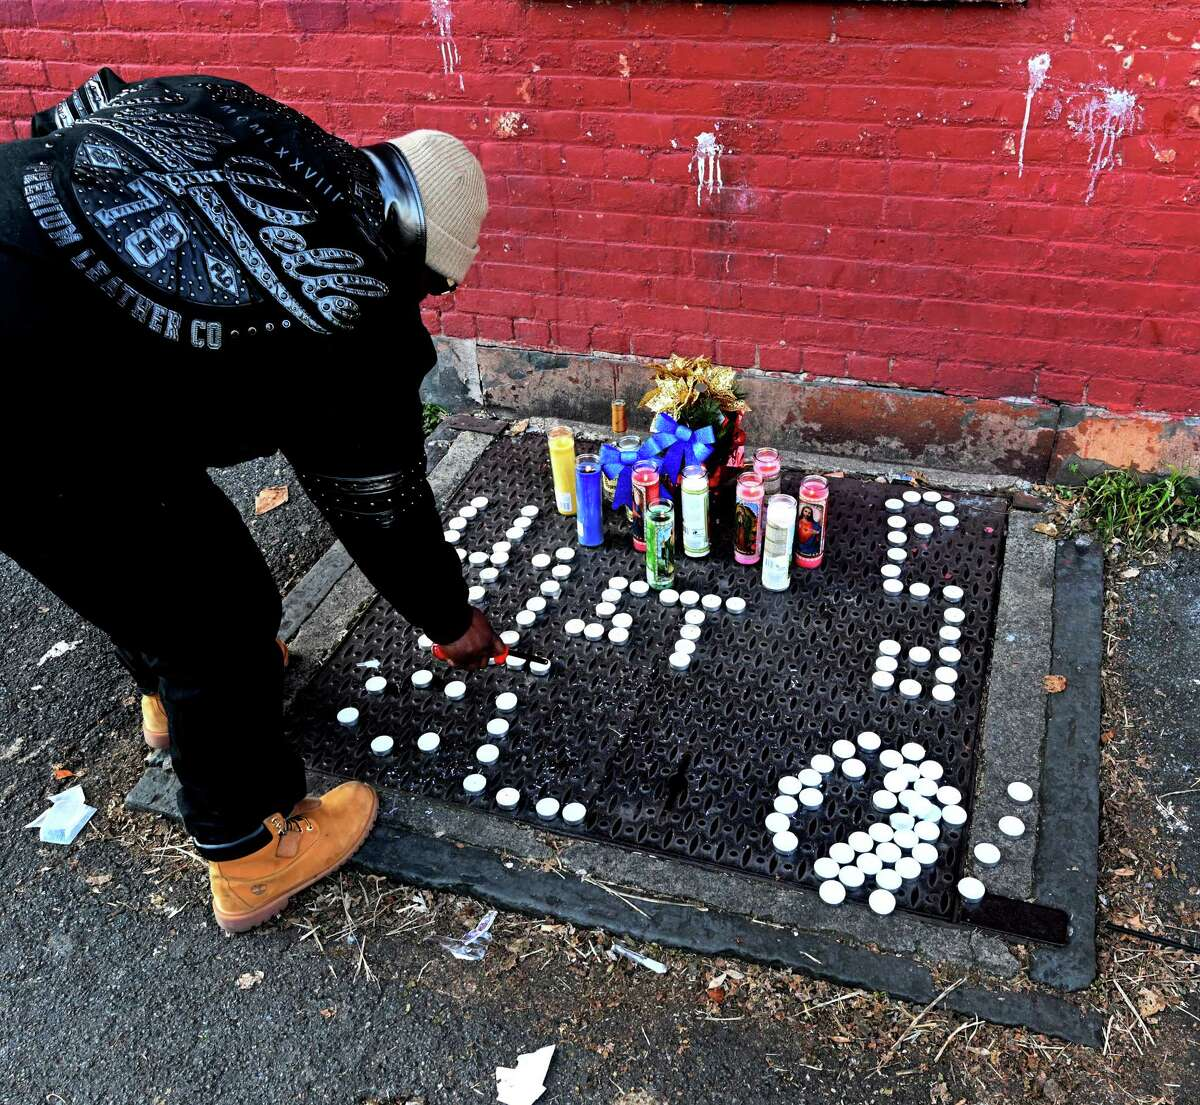 A mourner lights candles at a makeshift memorial to a shooting victim at the corner of Judson St. and Second St. Tuesday Dec. 11, 2018 in Albany, N.Y. (Skip Dickstein/Times Union)